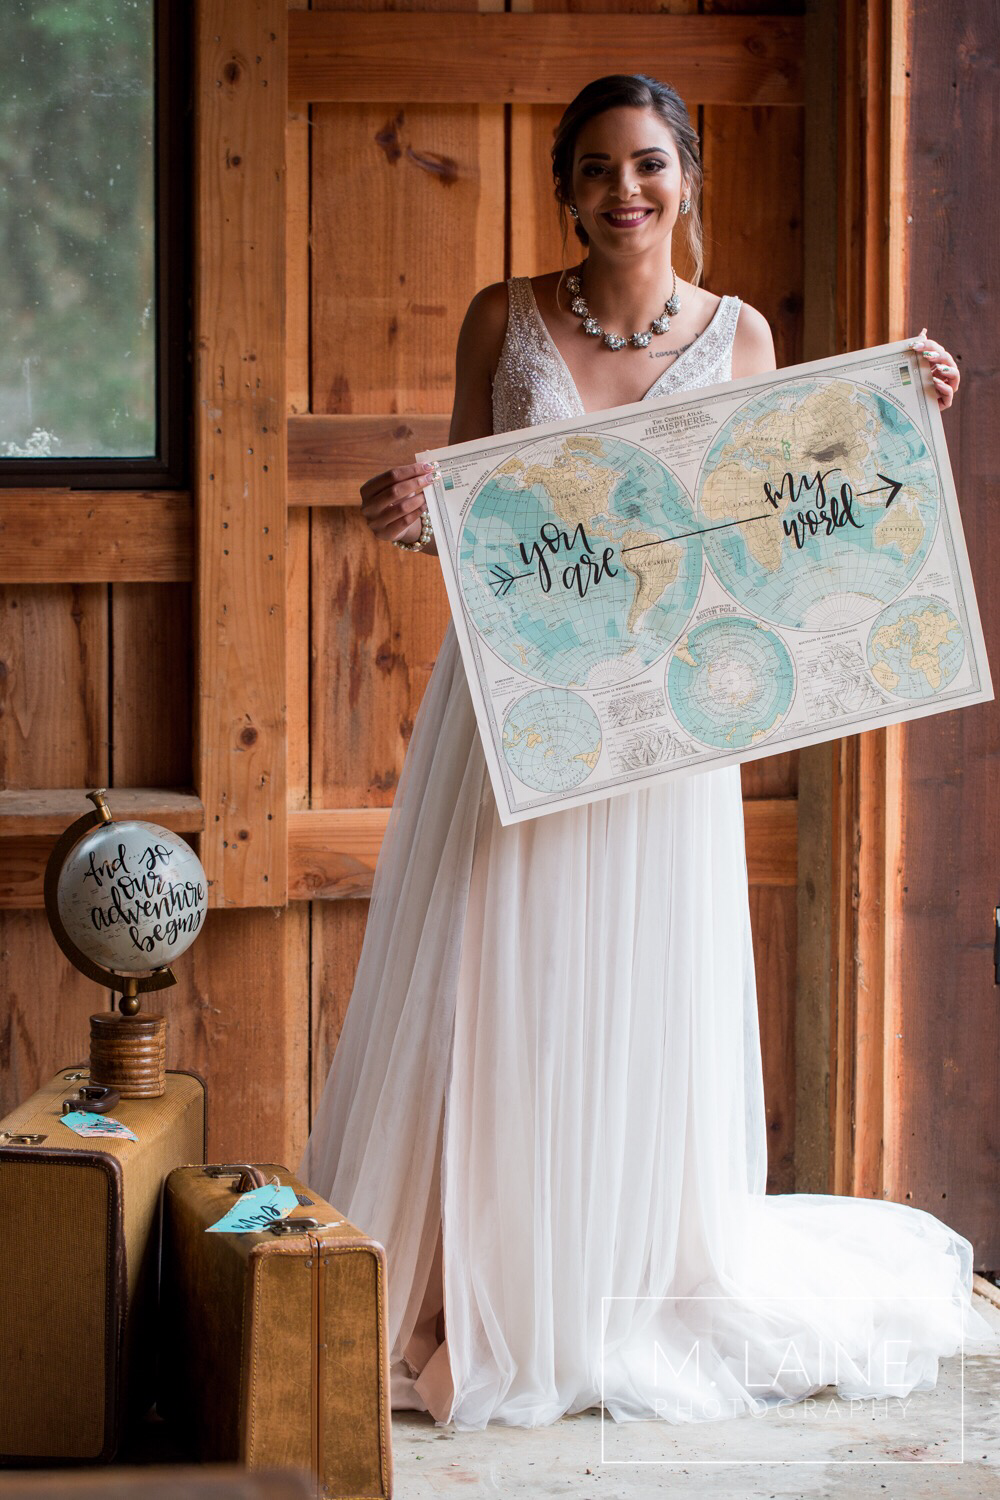 beautiful bride holding up a map that says you are my world.